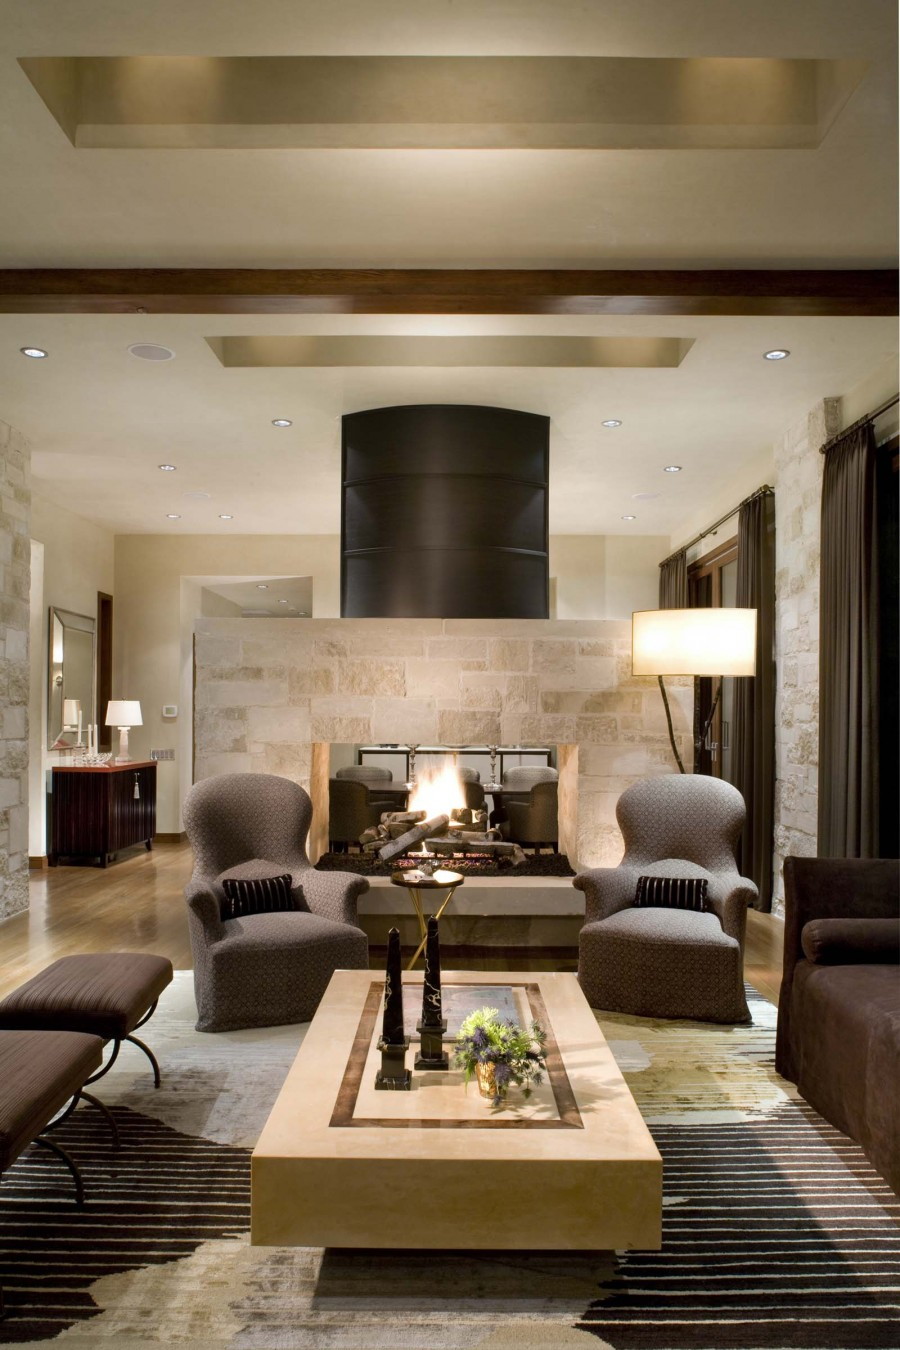 16 fabulous earth tones living room designs decoholic for Living room design ideas